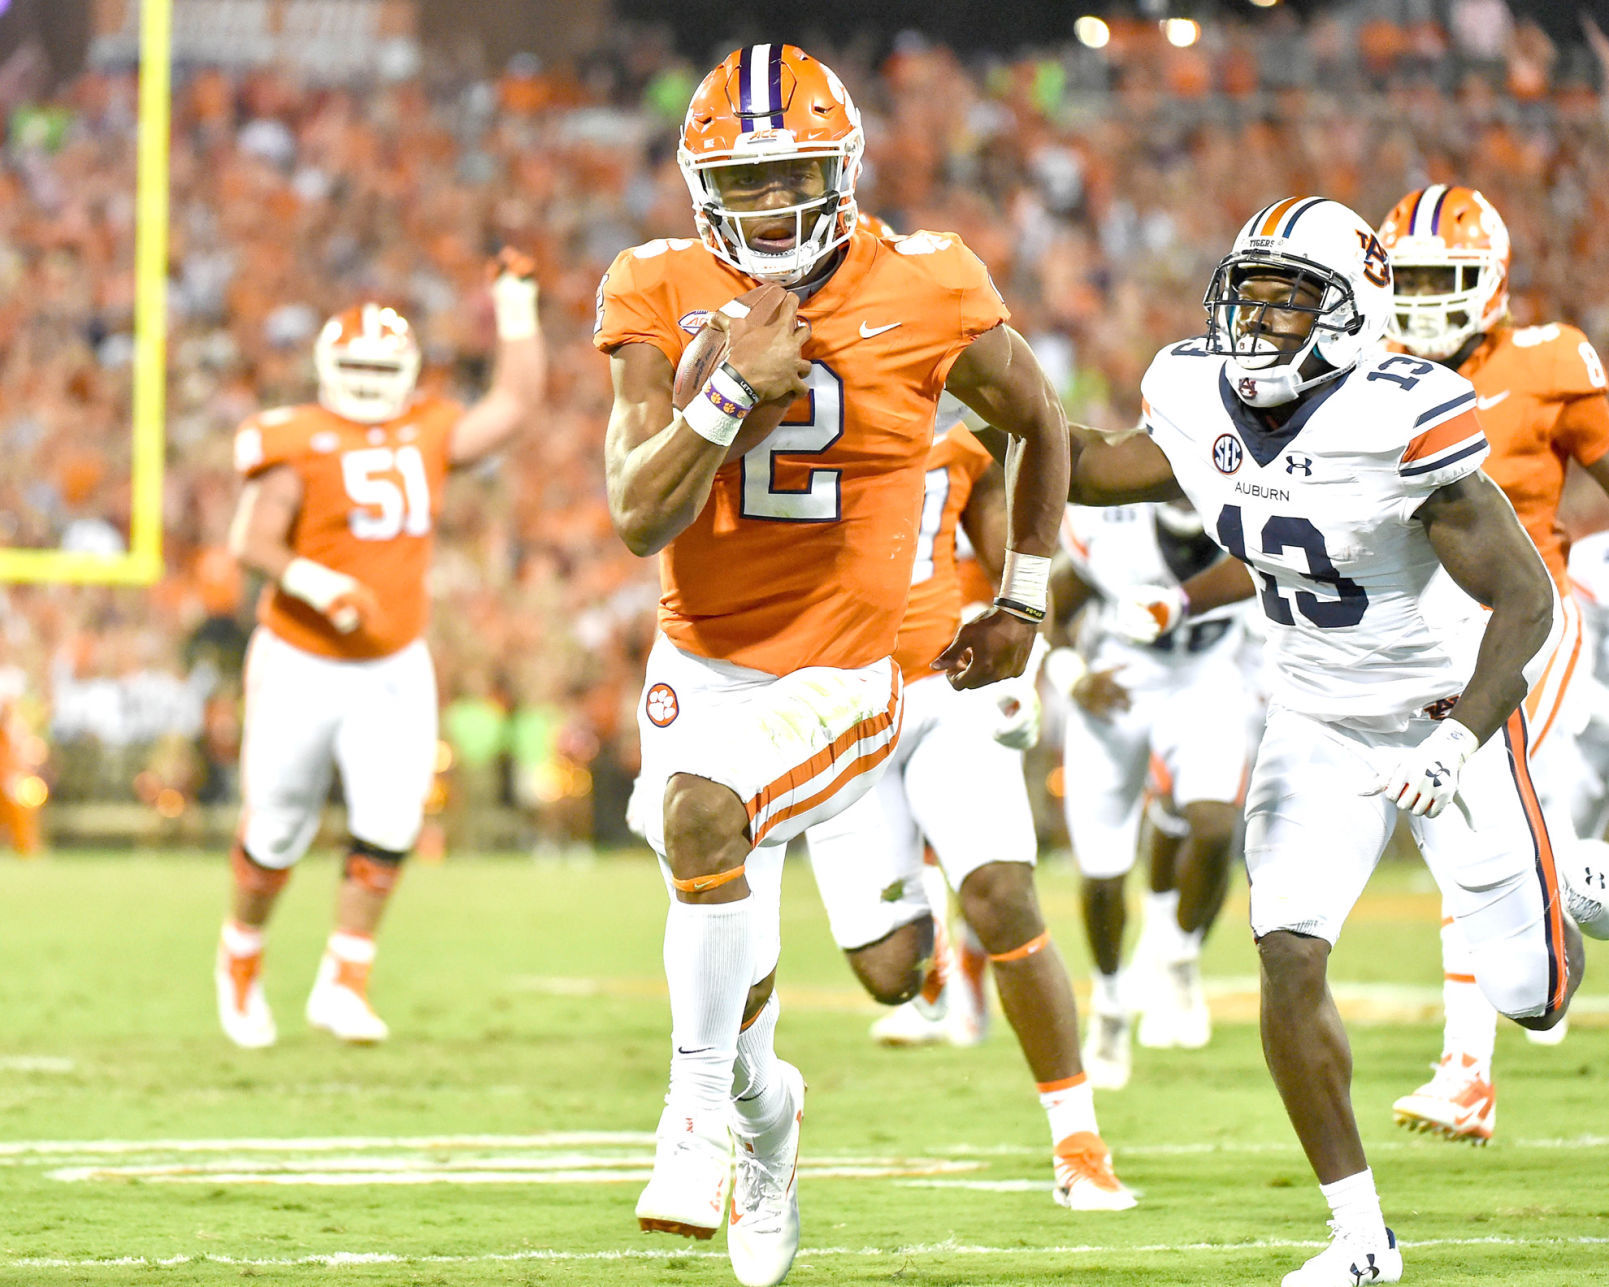 Clemson vs. Auburn not expected to be altered due to Hurricane Irma